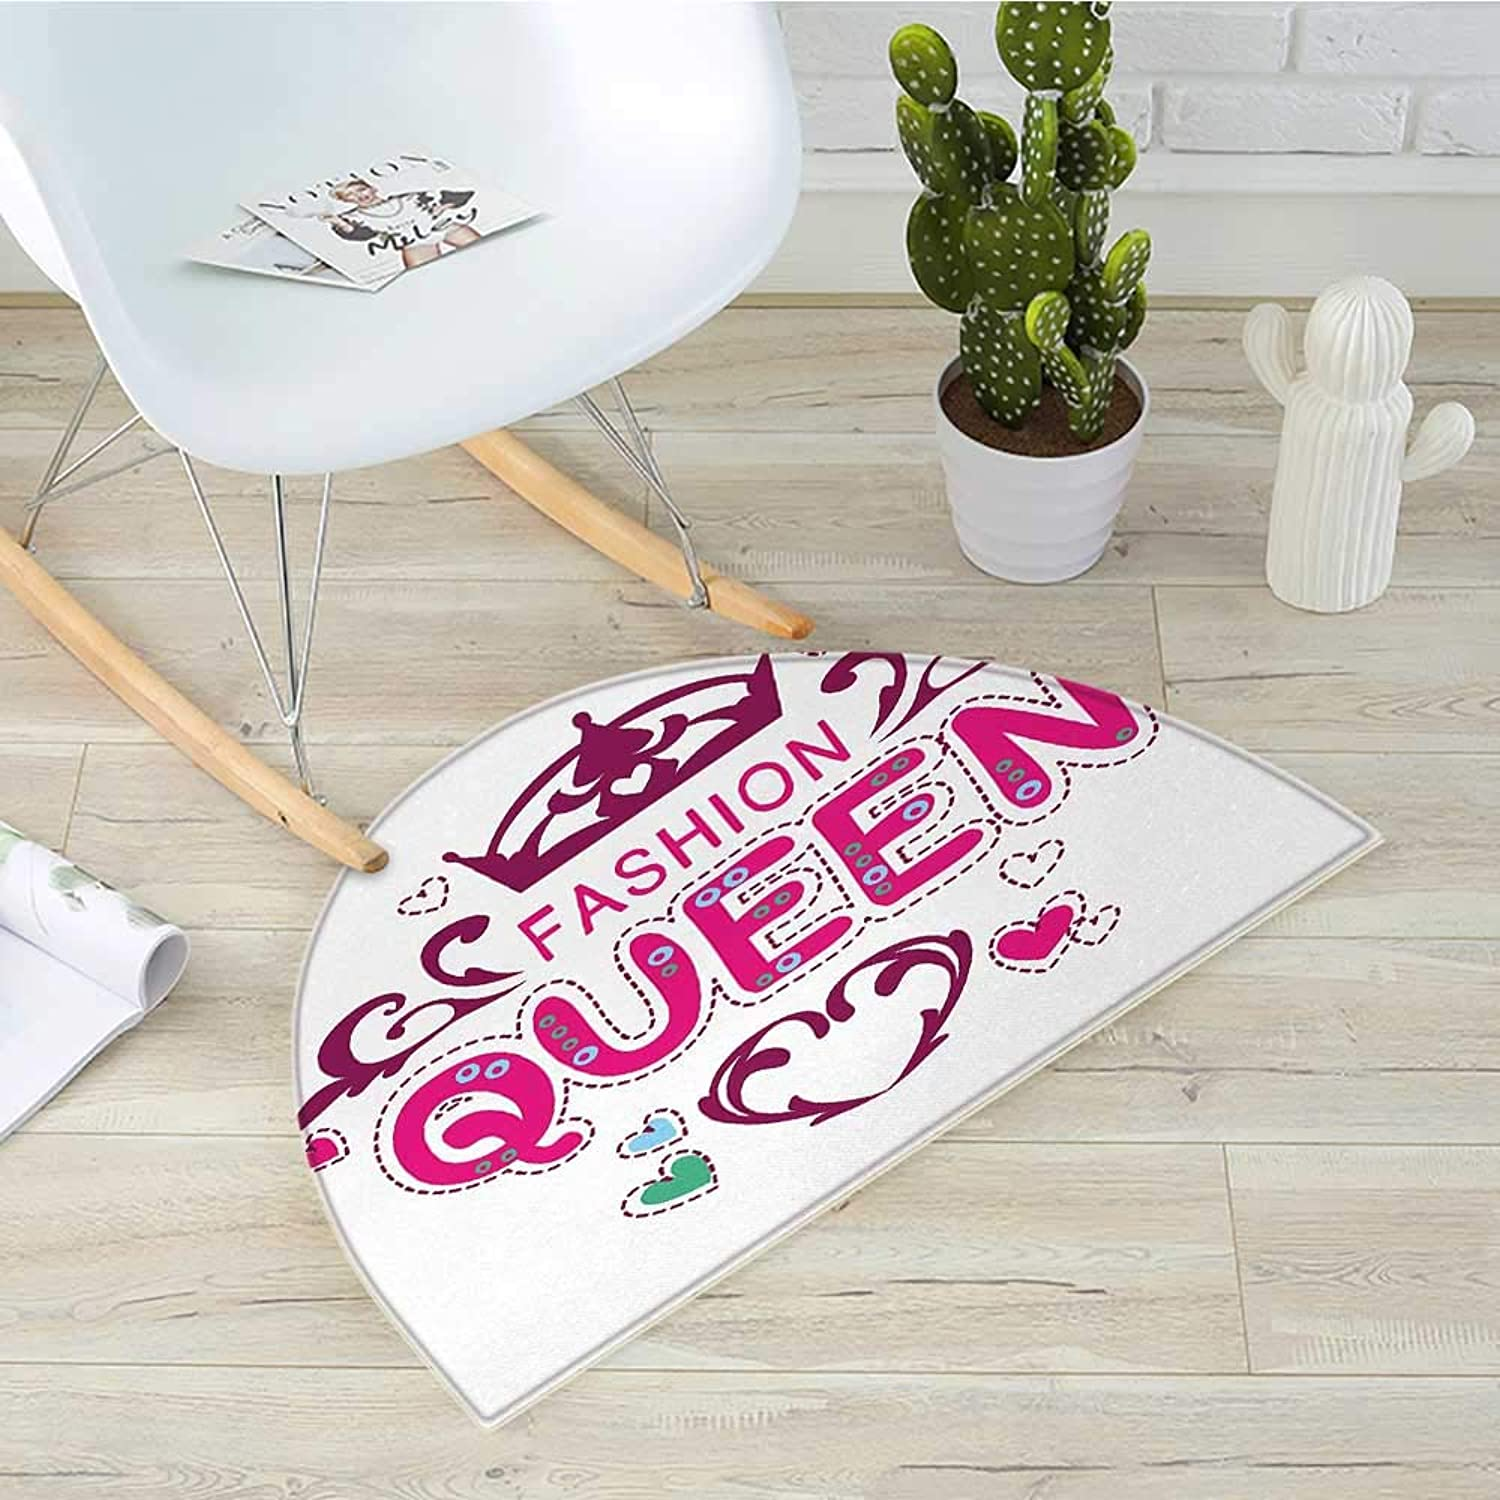 Queen Half Round Door mats Girlish Print Fancy Fashion Queen Lettering Floral Heart Shaped Ornaments Cute Bathroom Mat H 39.3  xD 59  Dried pink Pink